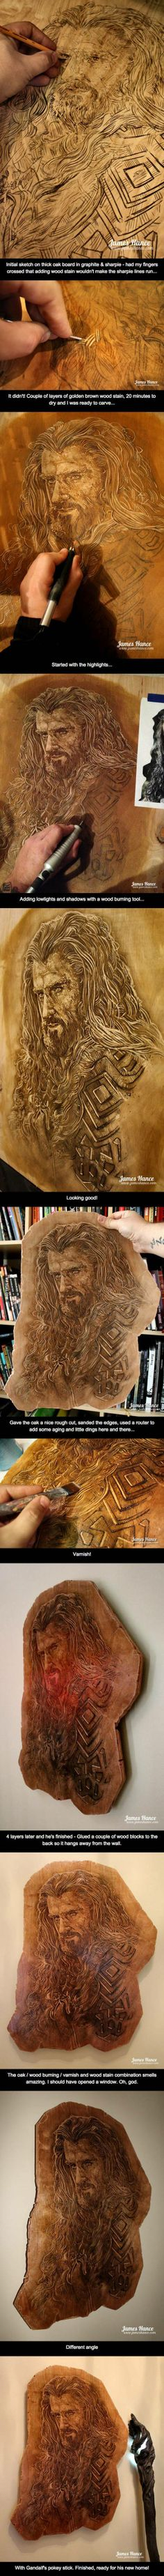 Believe it or not, this Oakenshield portrait was carved entirely from a piece of wood